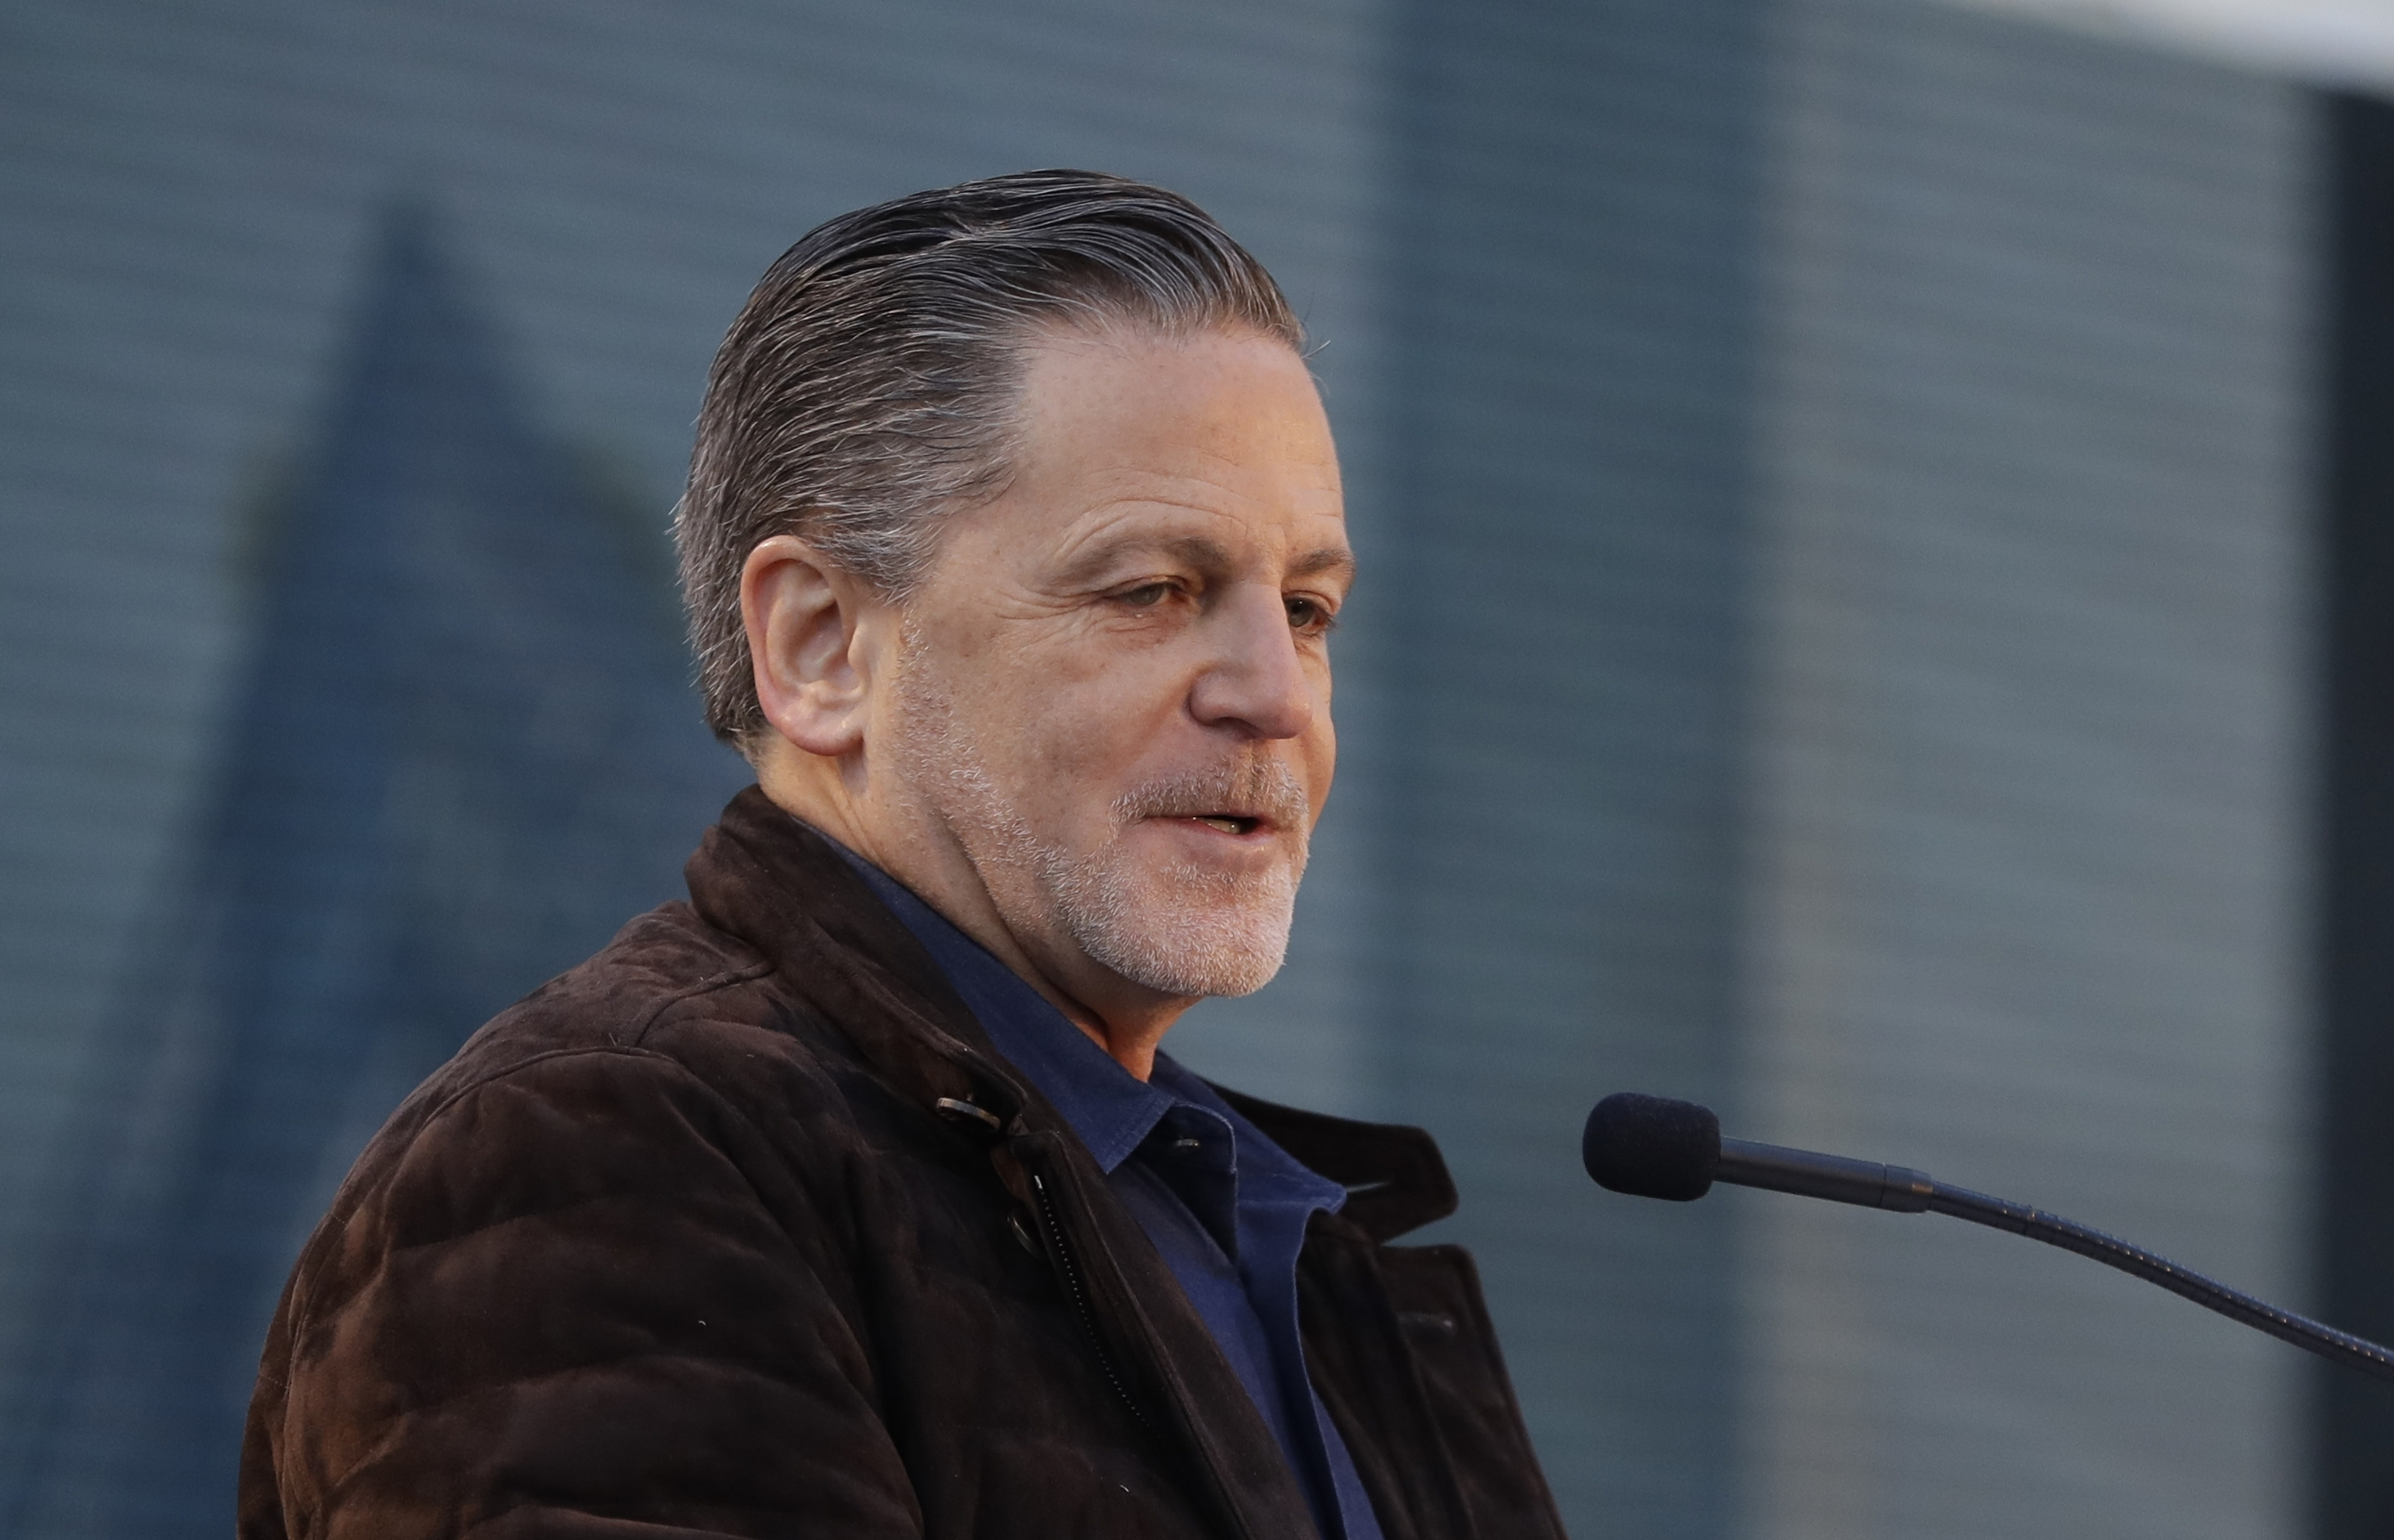 Dan Gilbert returns to metro Detroit after eight weeks in Chicago rehab center